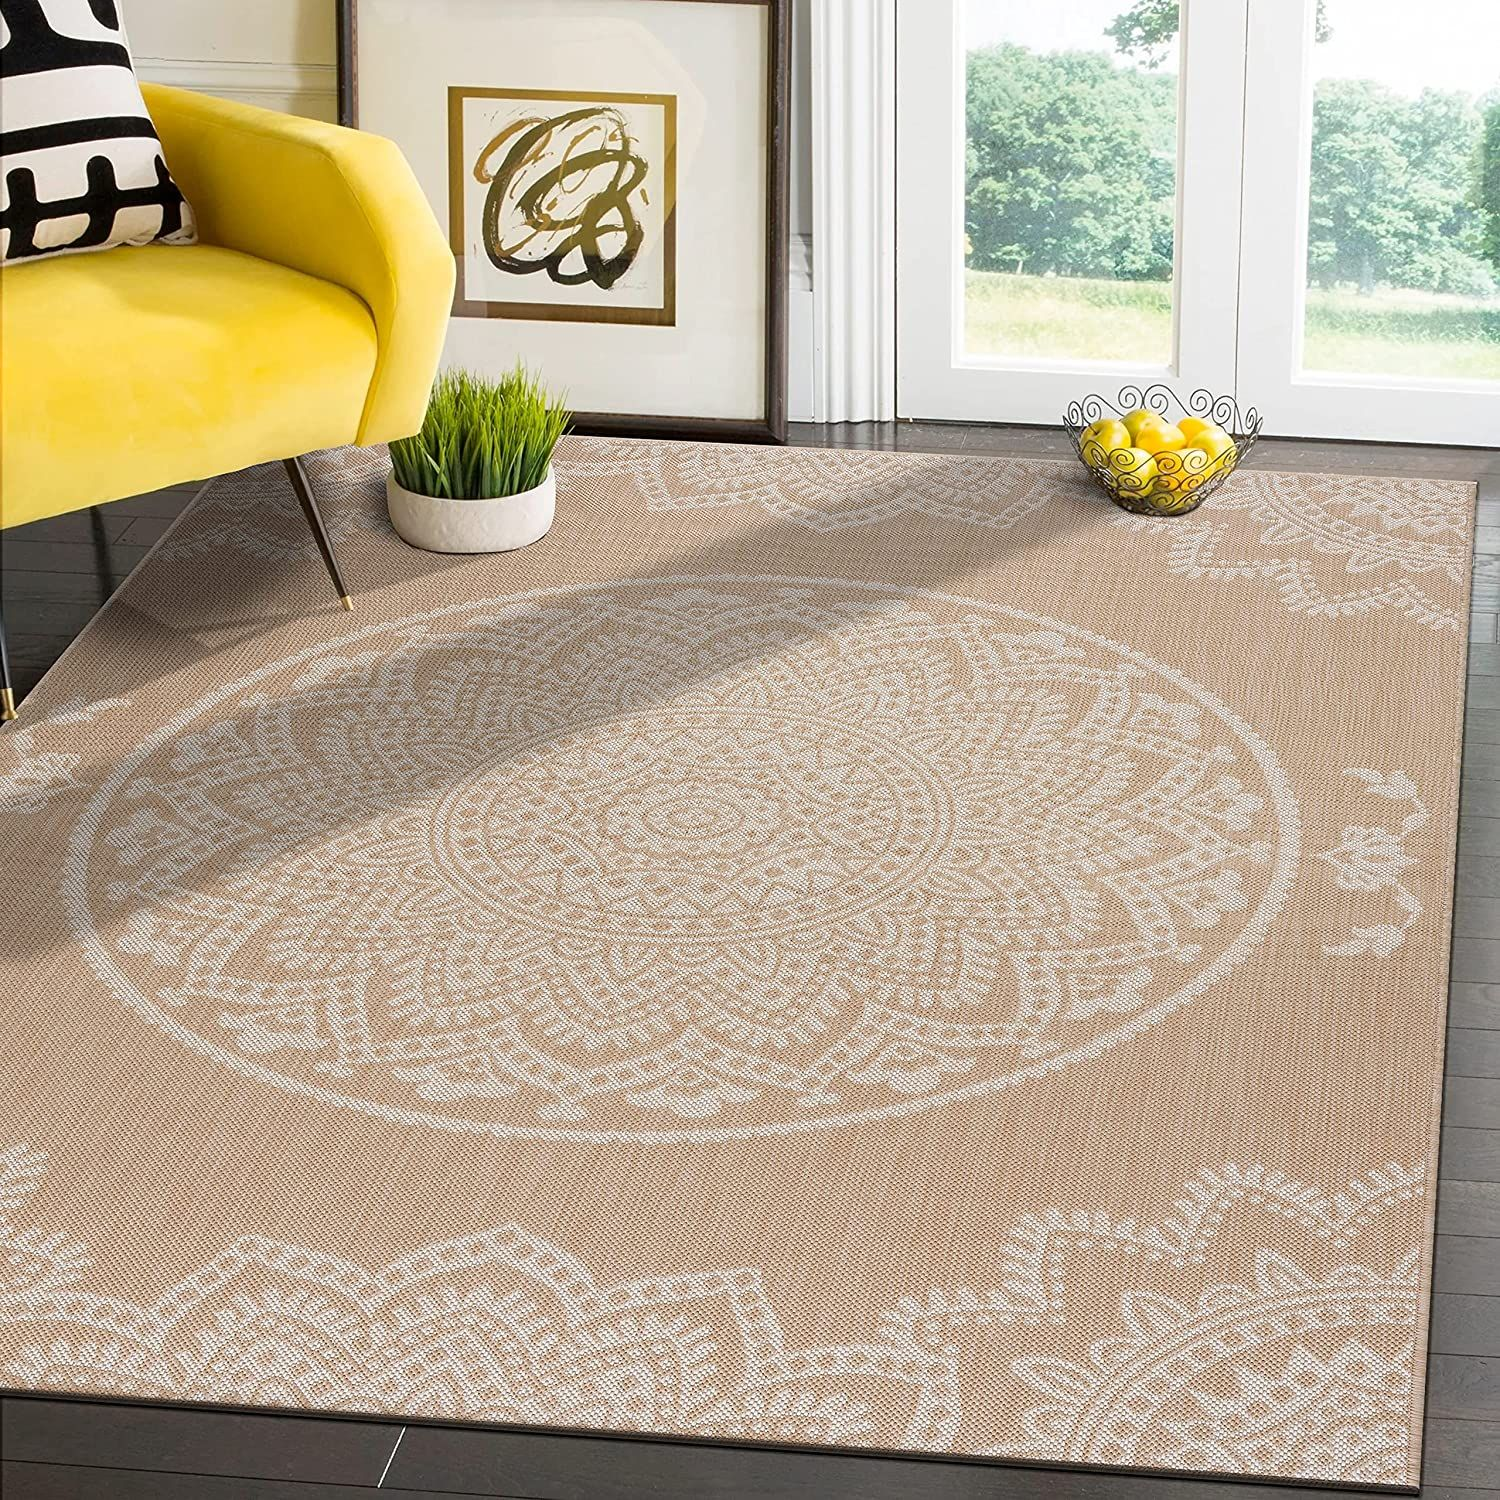 Modern Area Rugs for Indoor Outdoor patios   Medallion   Beige / White   5x7 Gallery